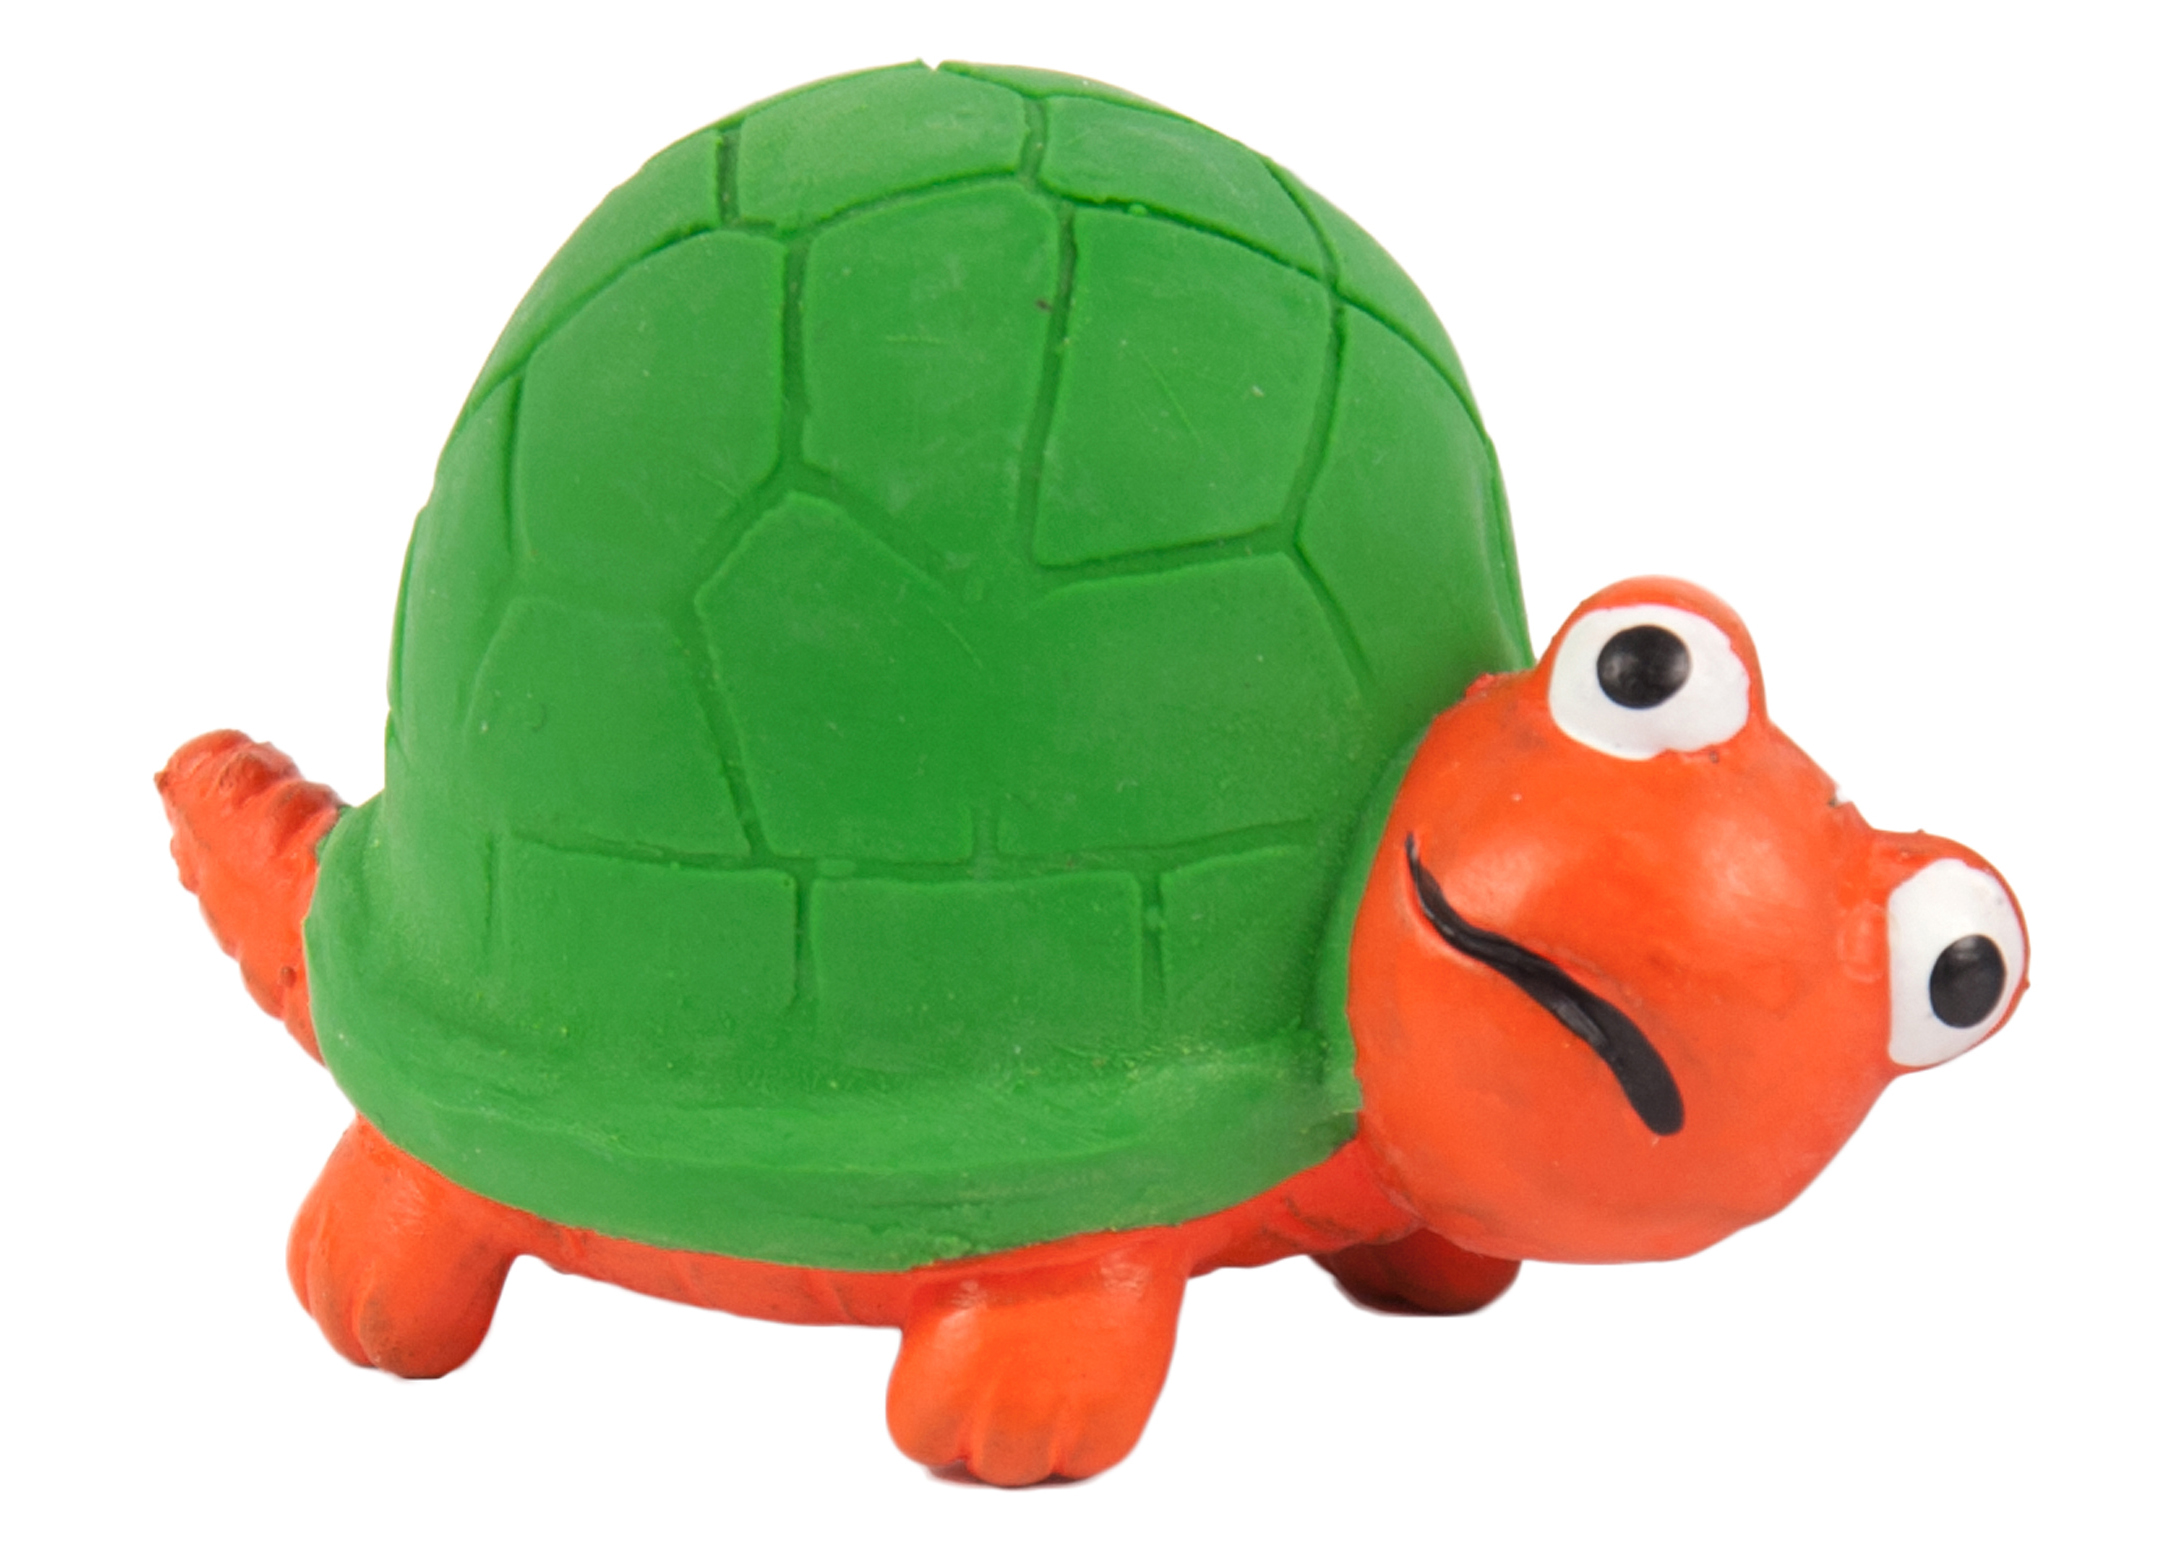 Chuckle City Squeaky Latex Turtle 7cm Orange/Green Toys